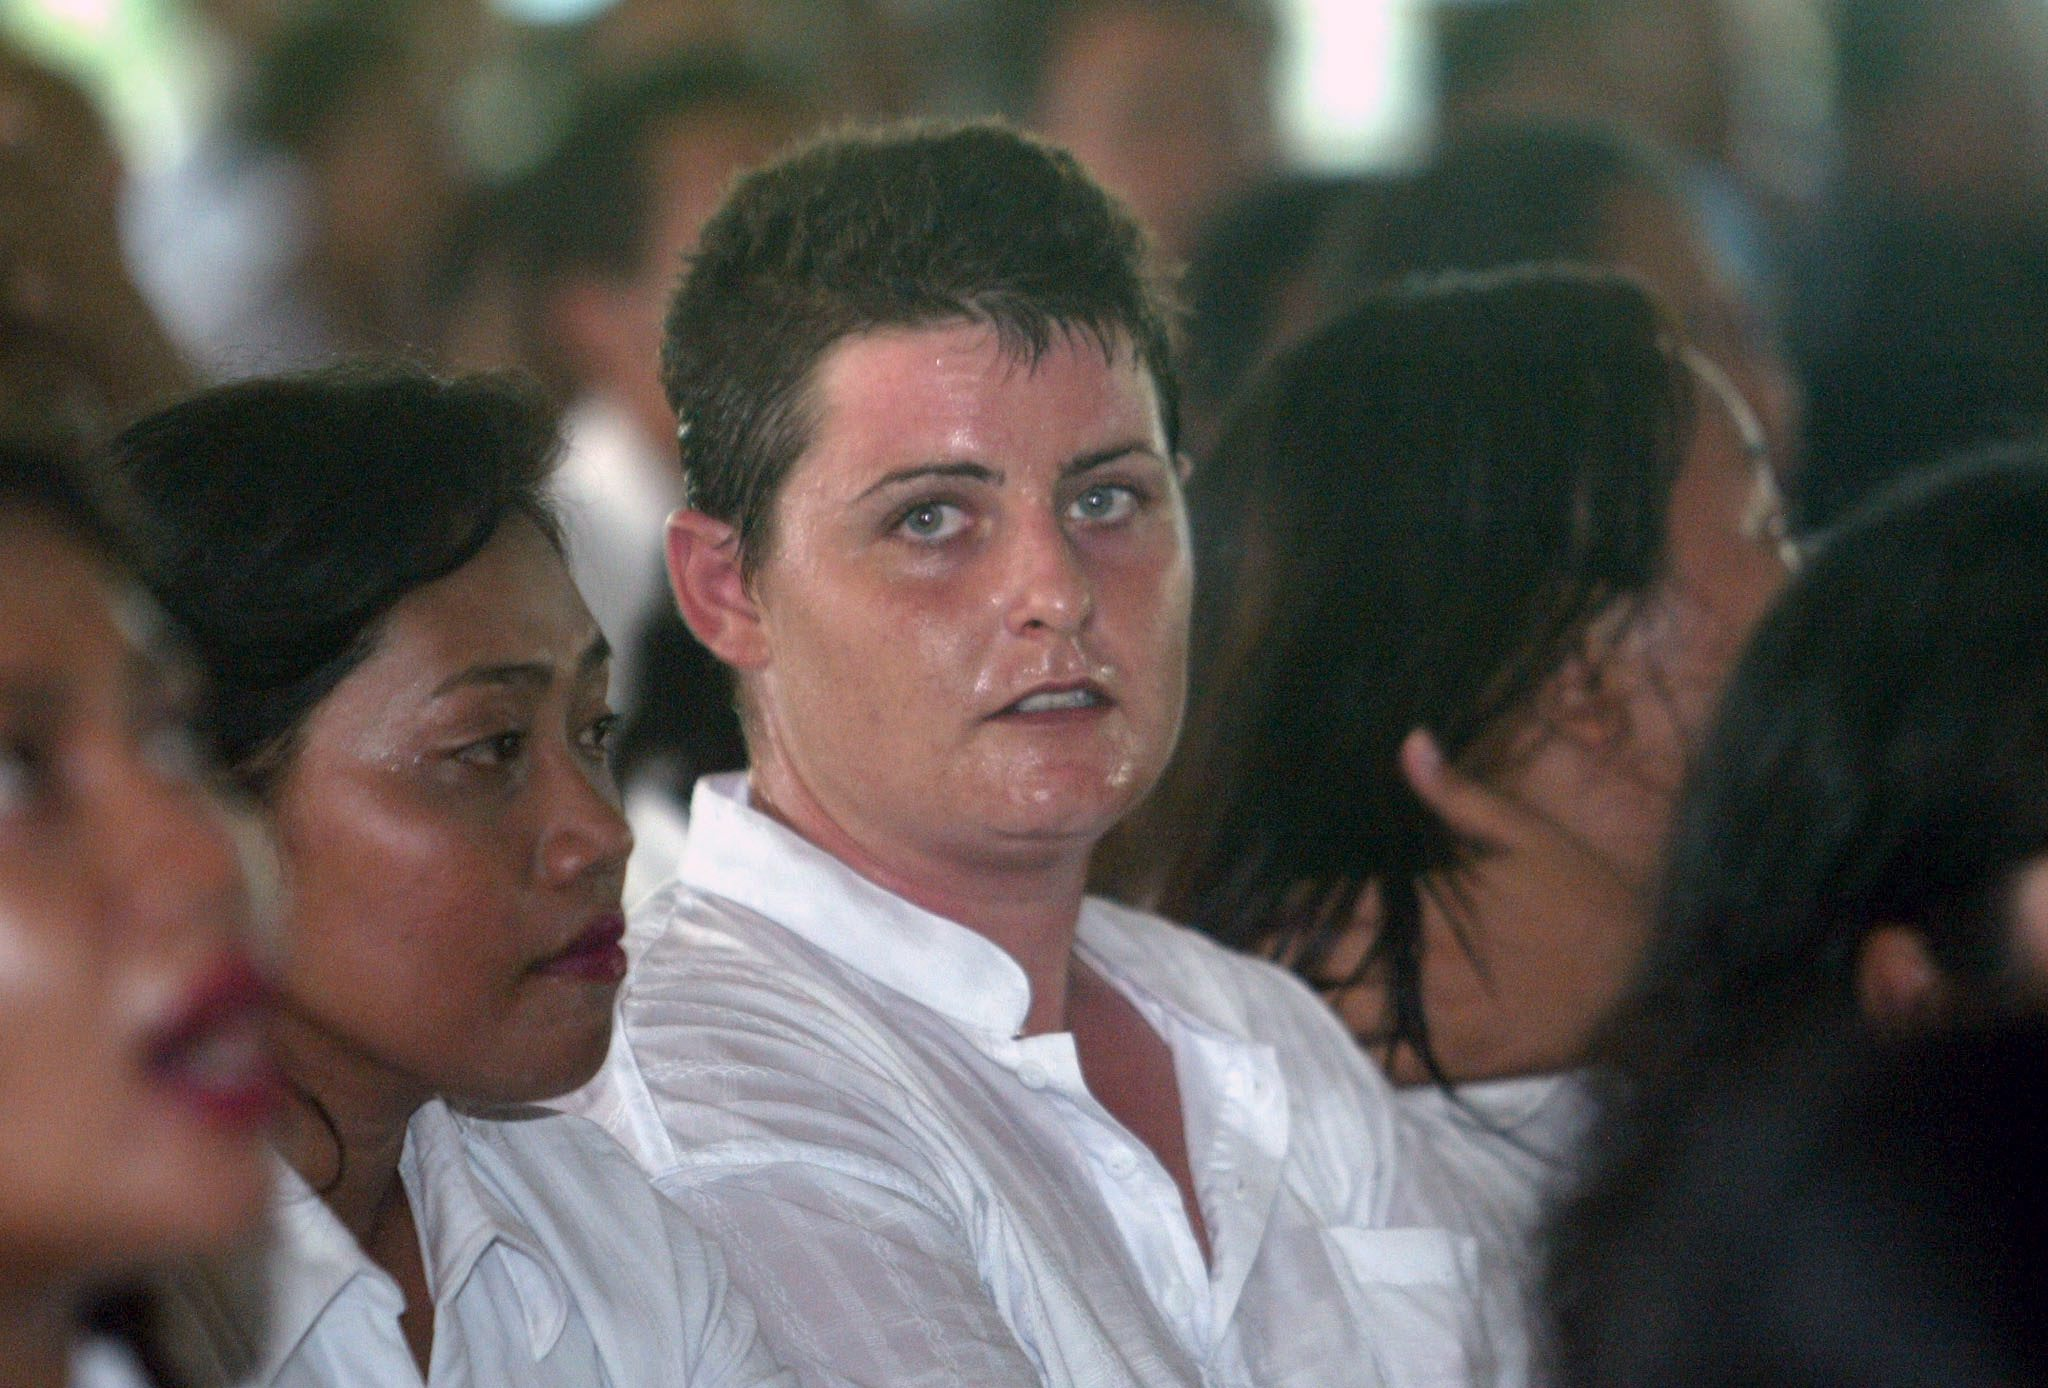 Bali Nine member Renae Lawrence to be released from jail on November 21